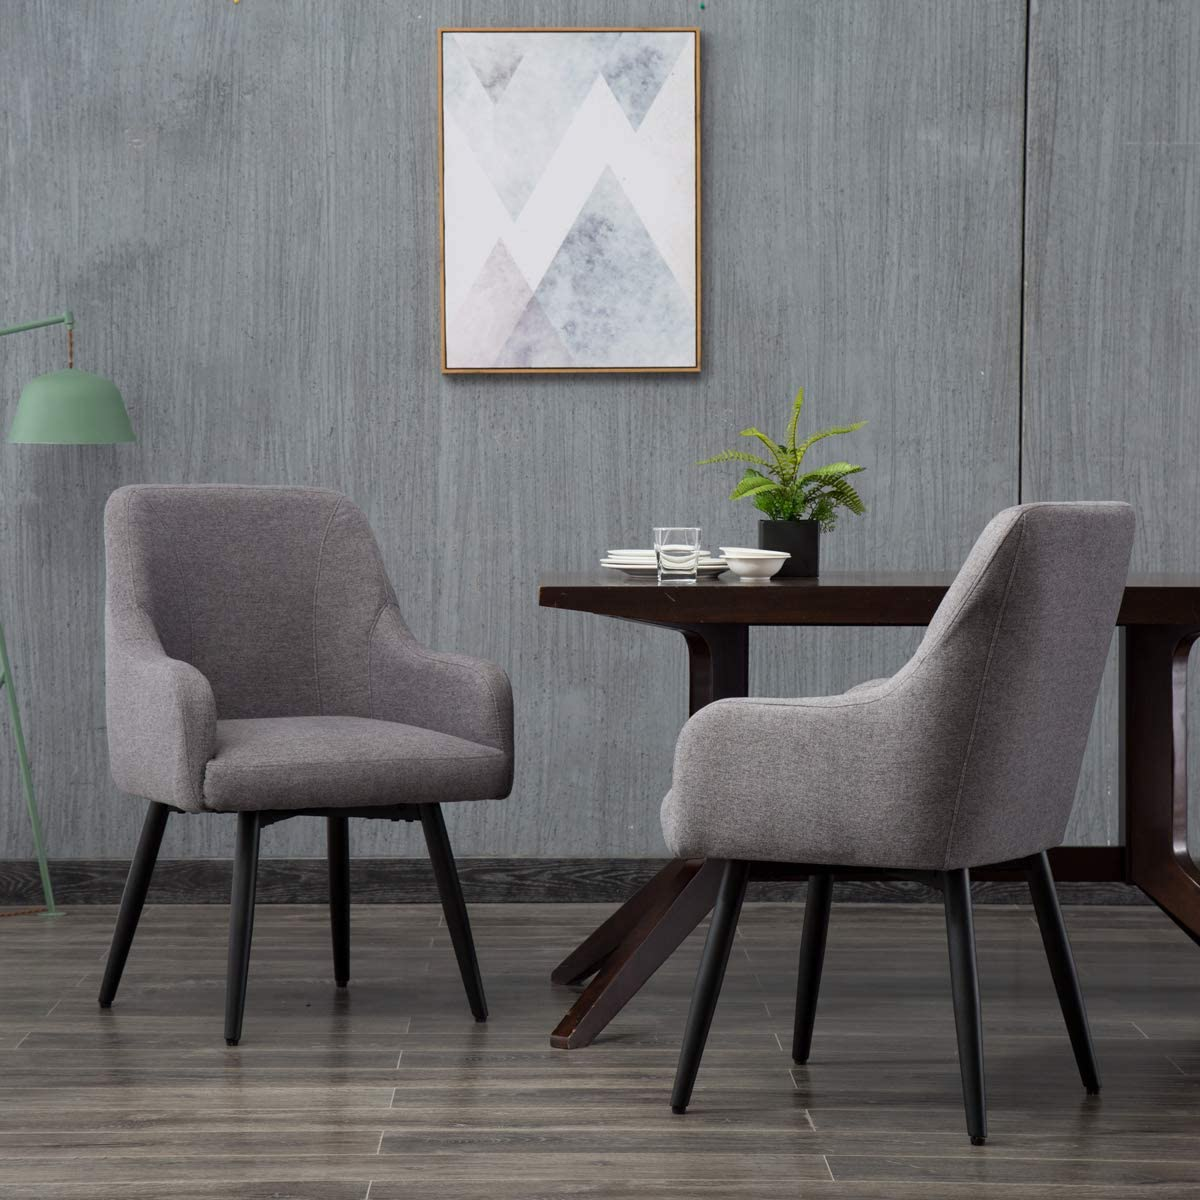 Swivel Dining Chairs Set of 8 Upholstered Living Room Chairs Office Desk  Arm Chair Gray